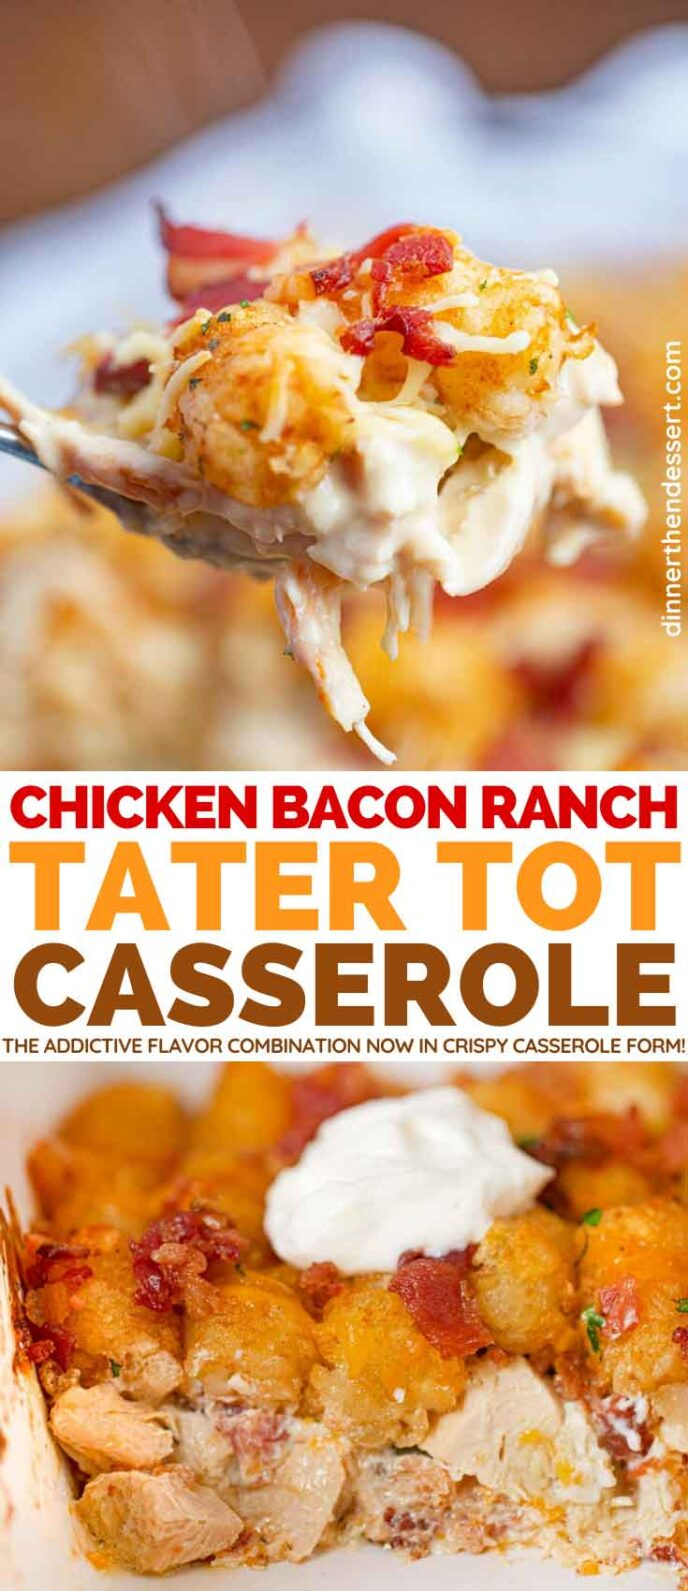 Chicken Bacon Ranch Tater Tot Casserole collage